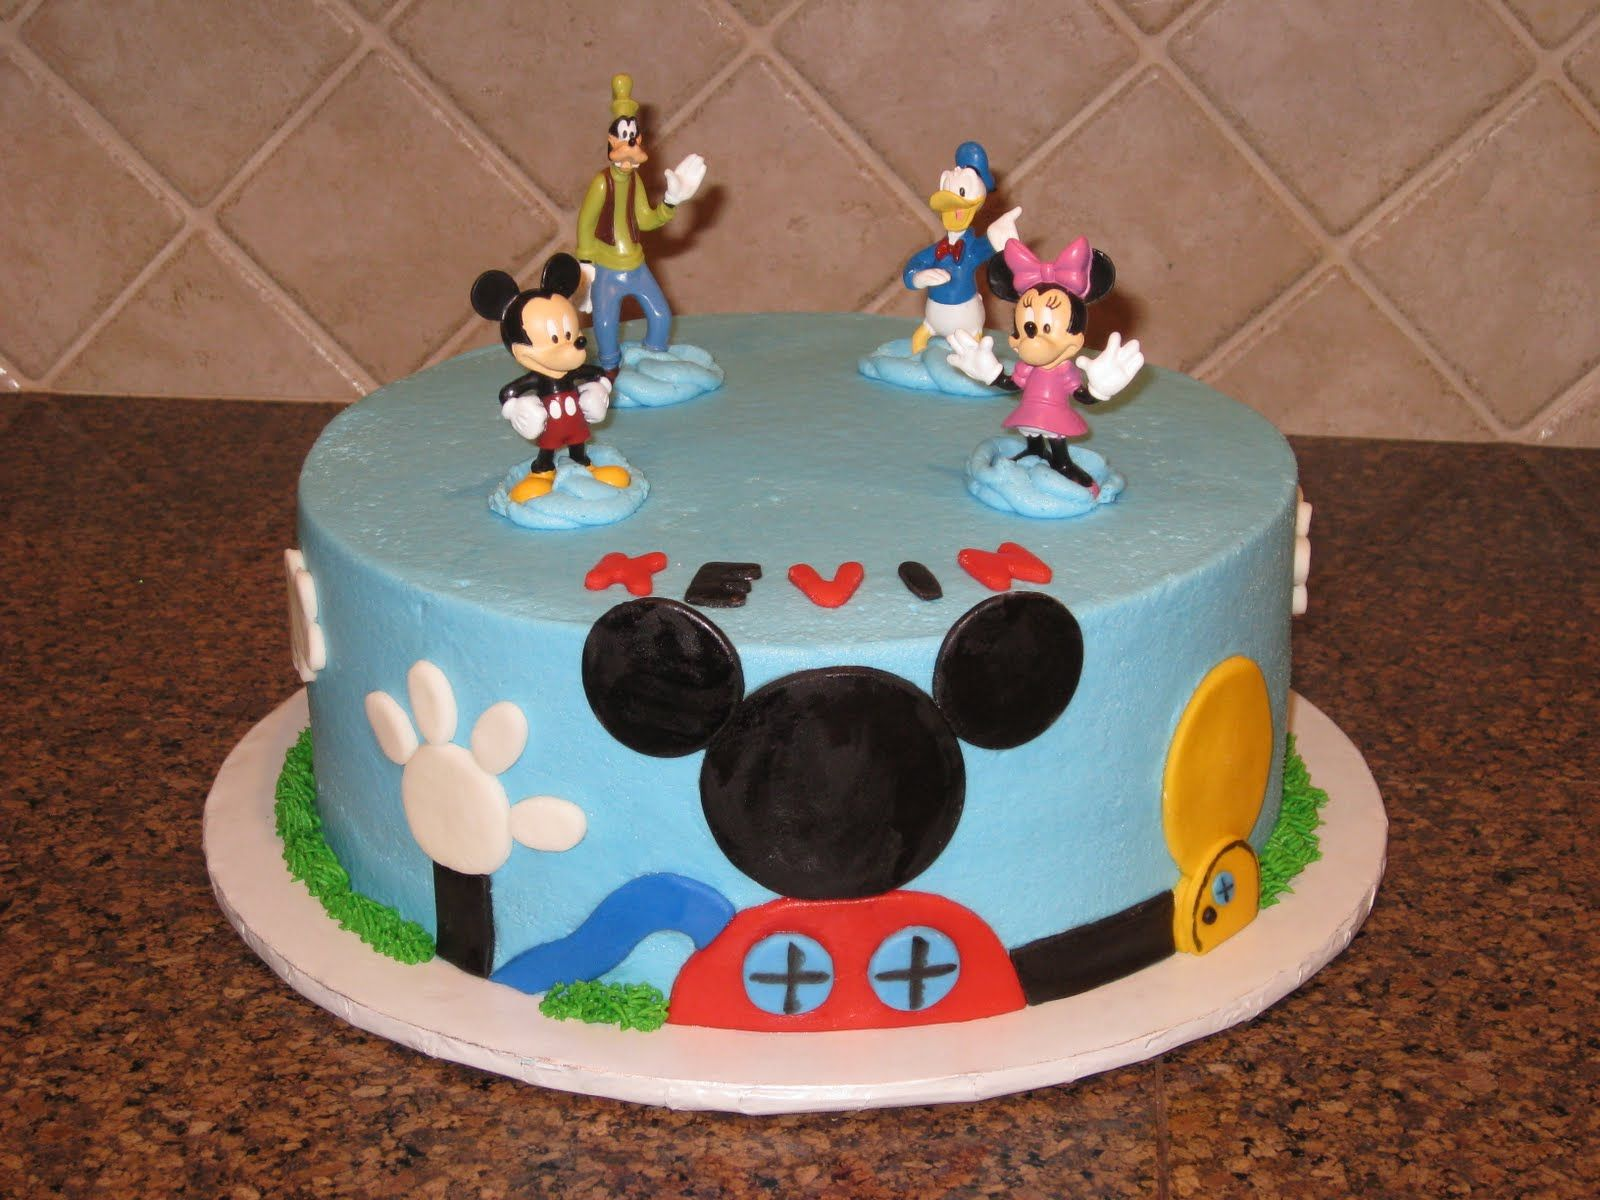 Mickey Mouse Cake Ideas Shannons Creative Cakes Mickey Mouse - Mickey birthday cake ideas